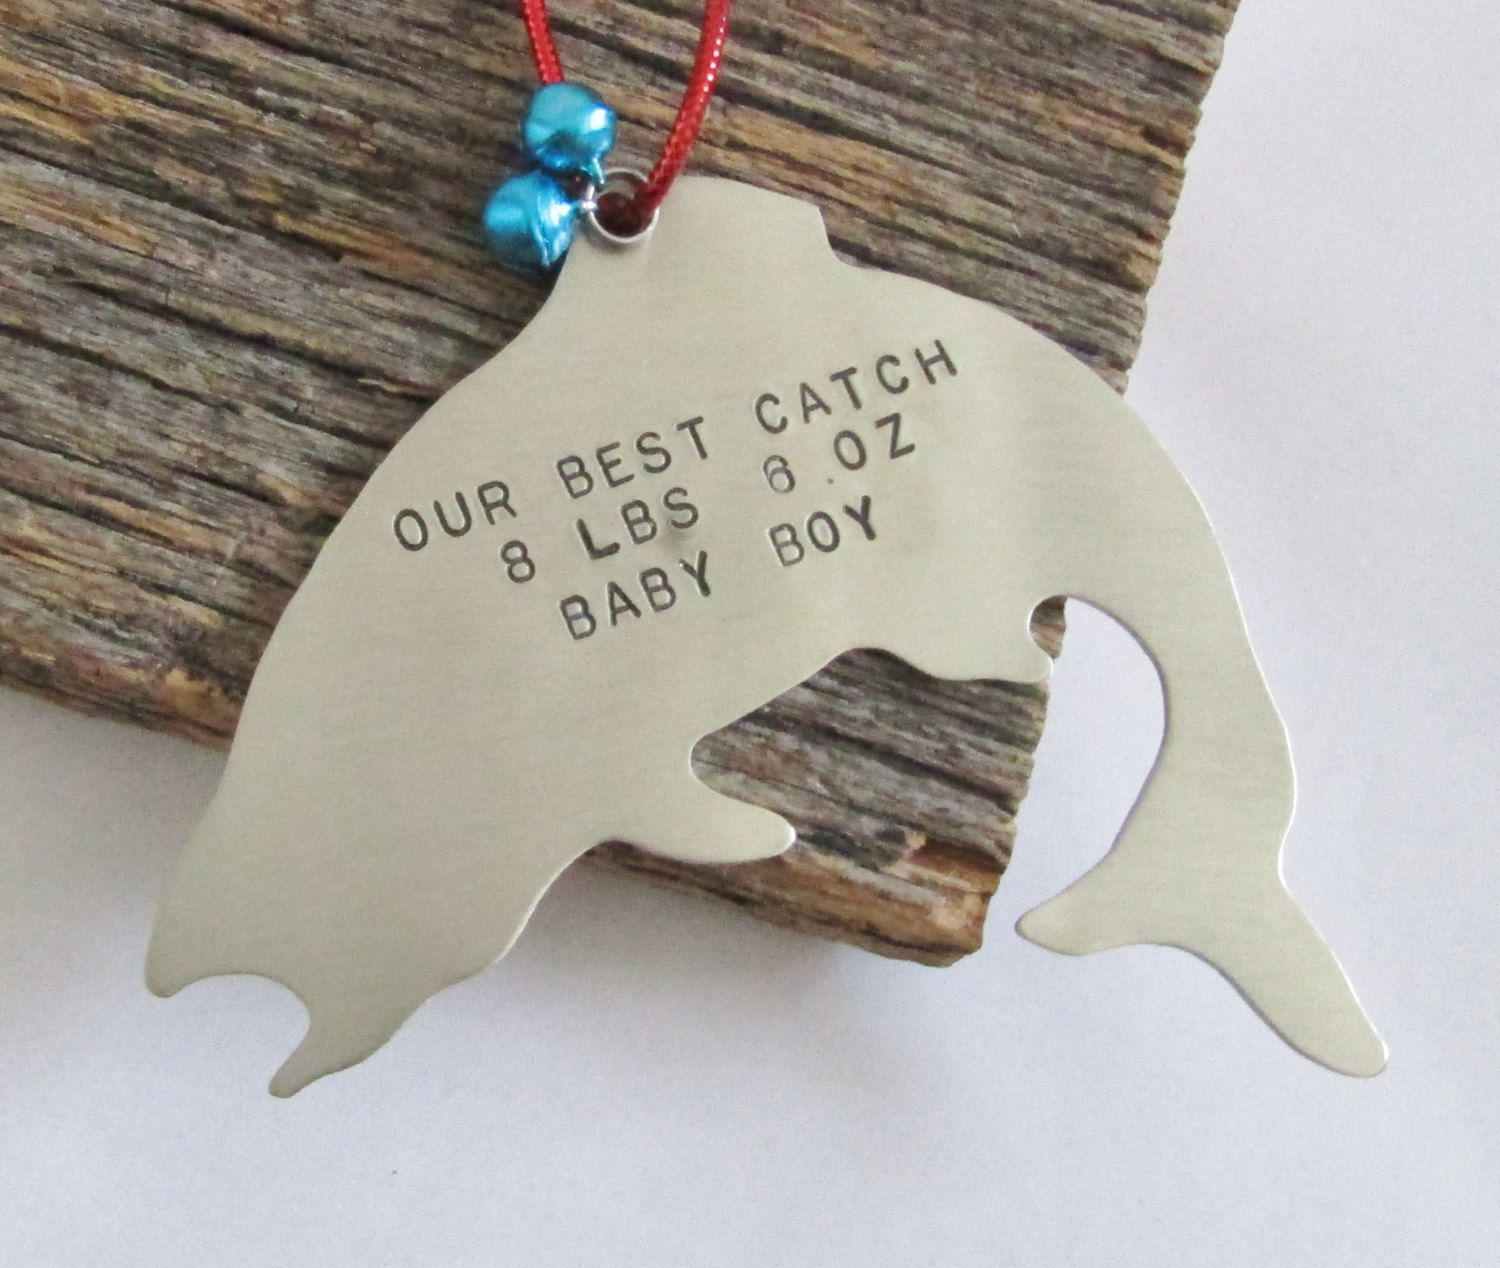 New baby christmas ornament - Personalized Christmas Ornament Fishing Ornament New Baby Ornament Baby S 1st Christmas Ornament Baby Weight Baby Stats Baby Name Ornaments